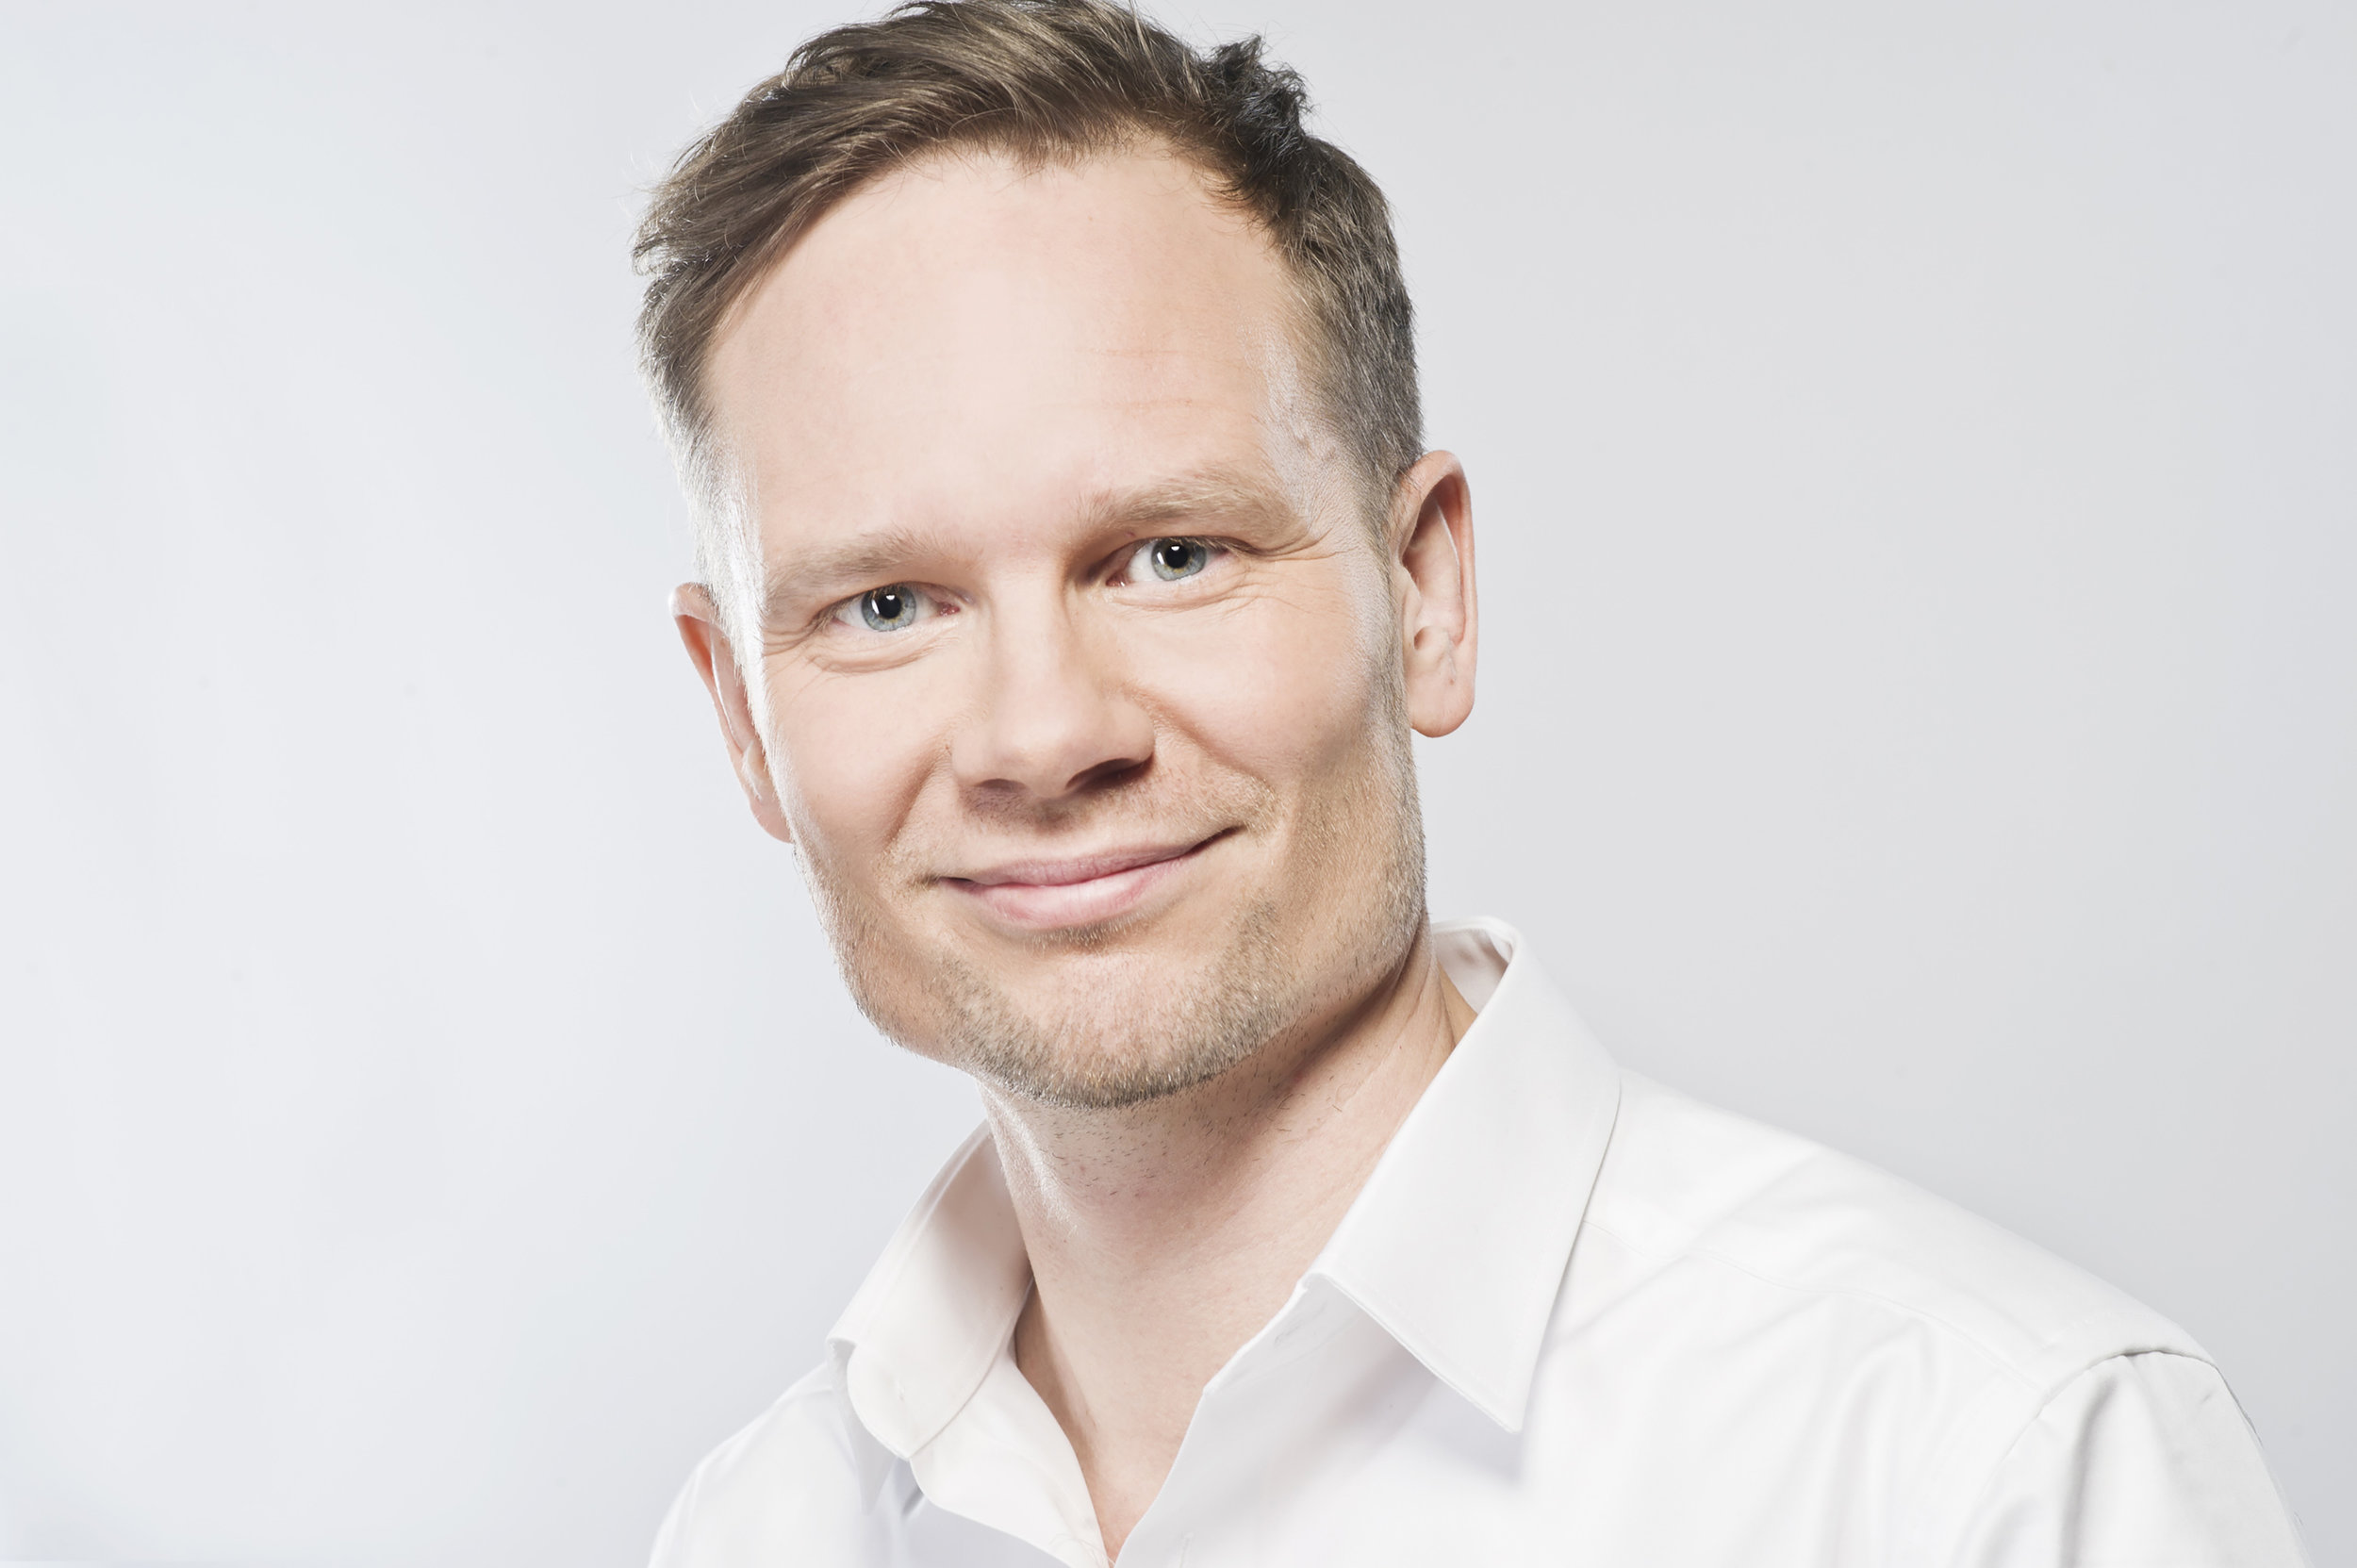 Risto Kuulasmaa - Risto is an entrepreneur and senior executive in media and events. He doesn't do New Year resolutions, instead, he is interested in long term personal development. In Inner Island he is the coach-in-demand supporting participants' personal or business related dreams coming true.